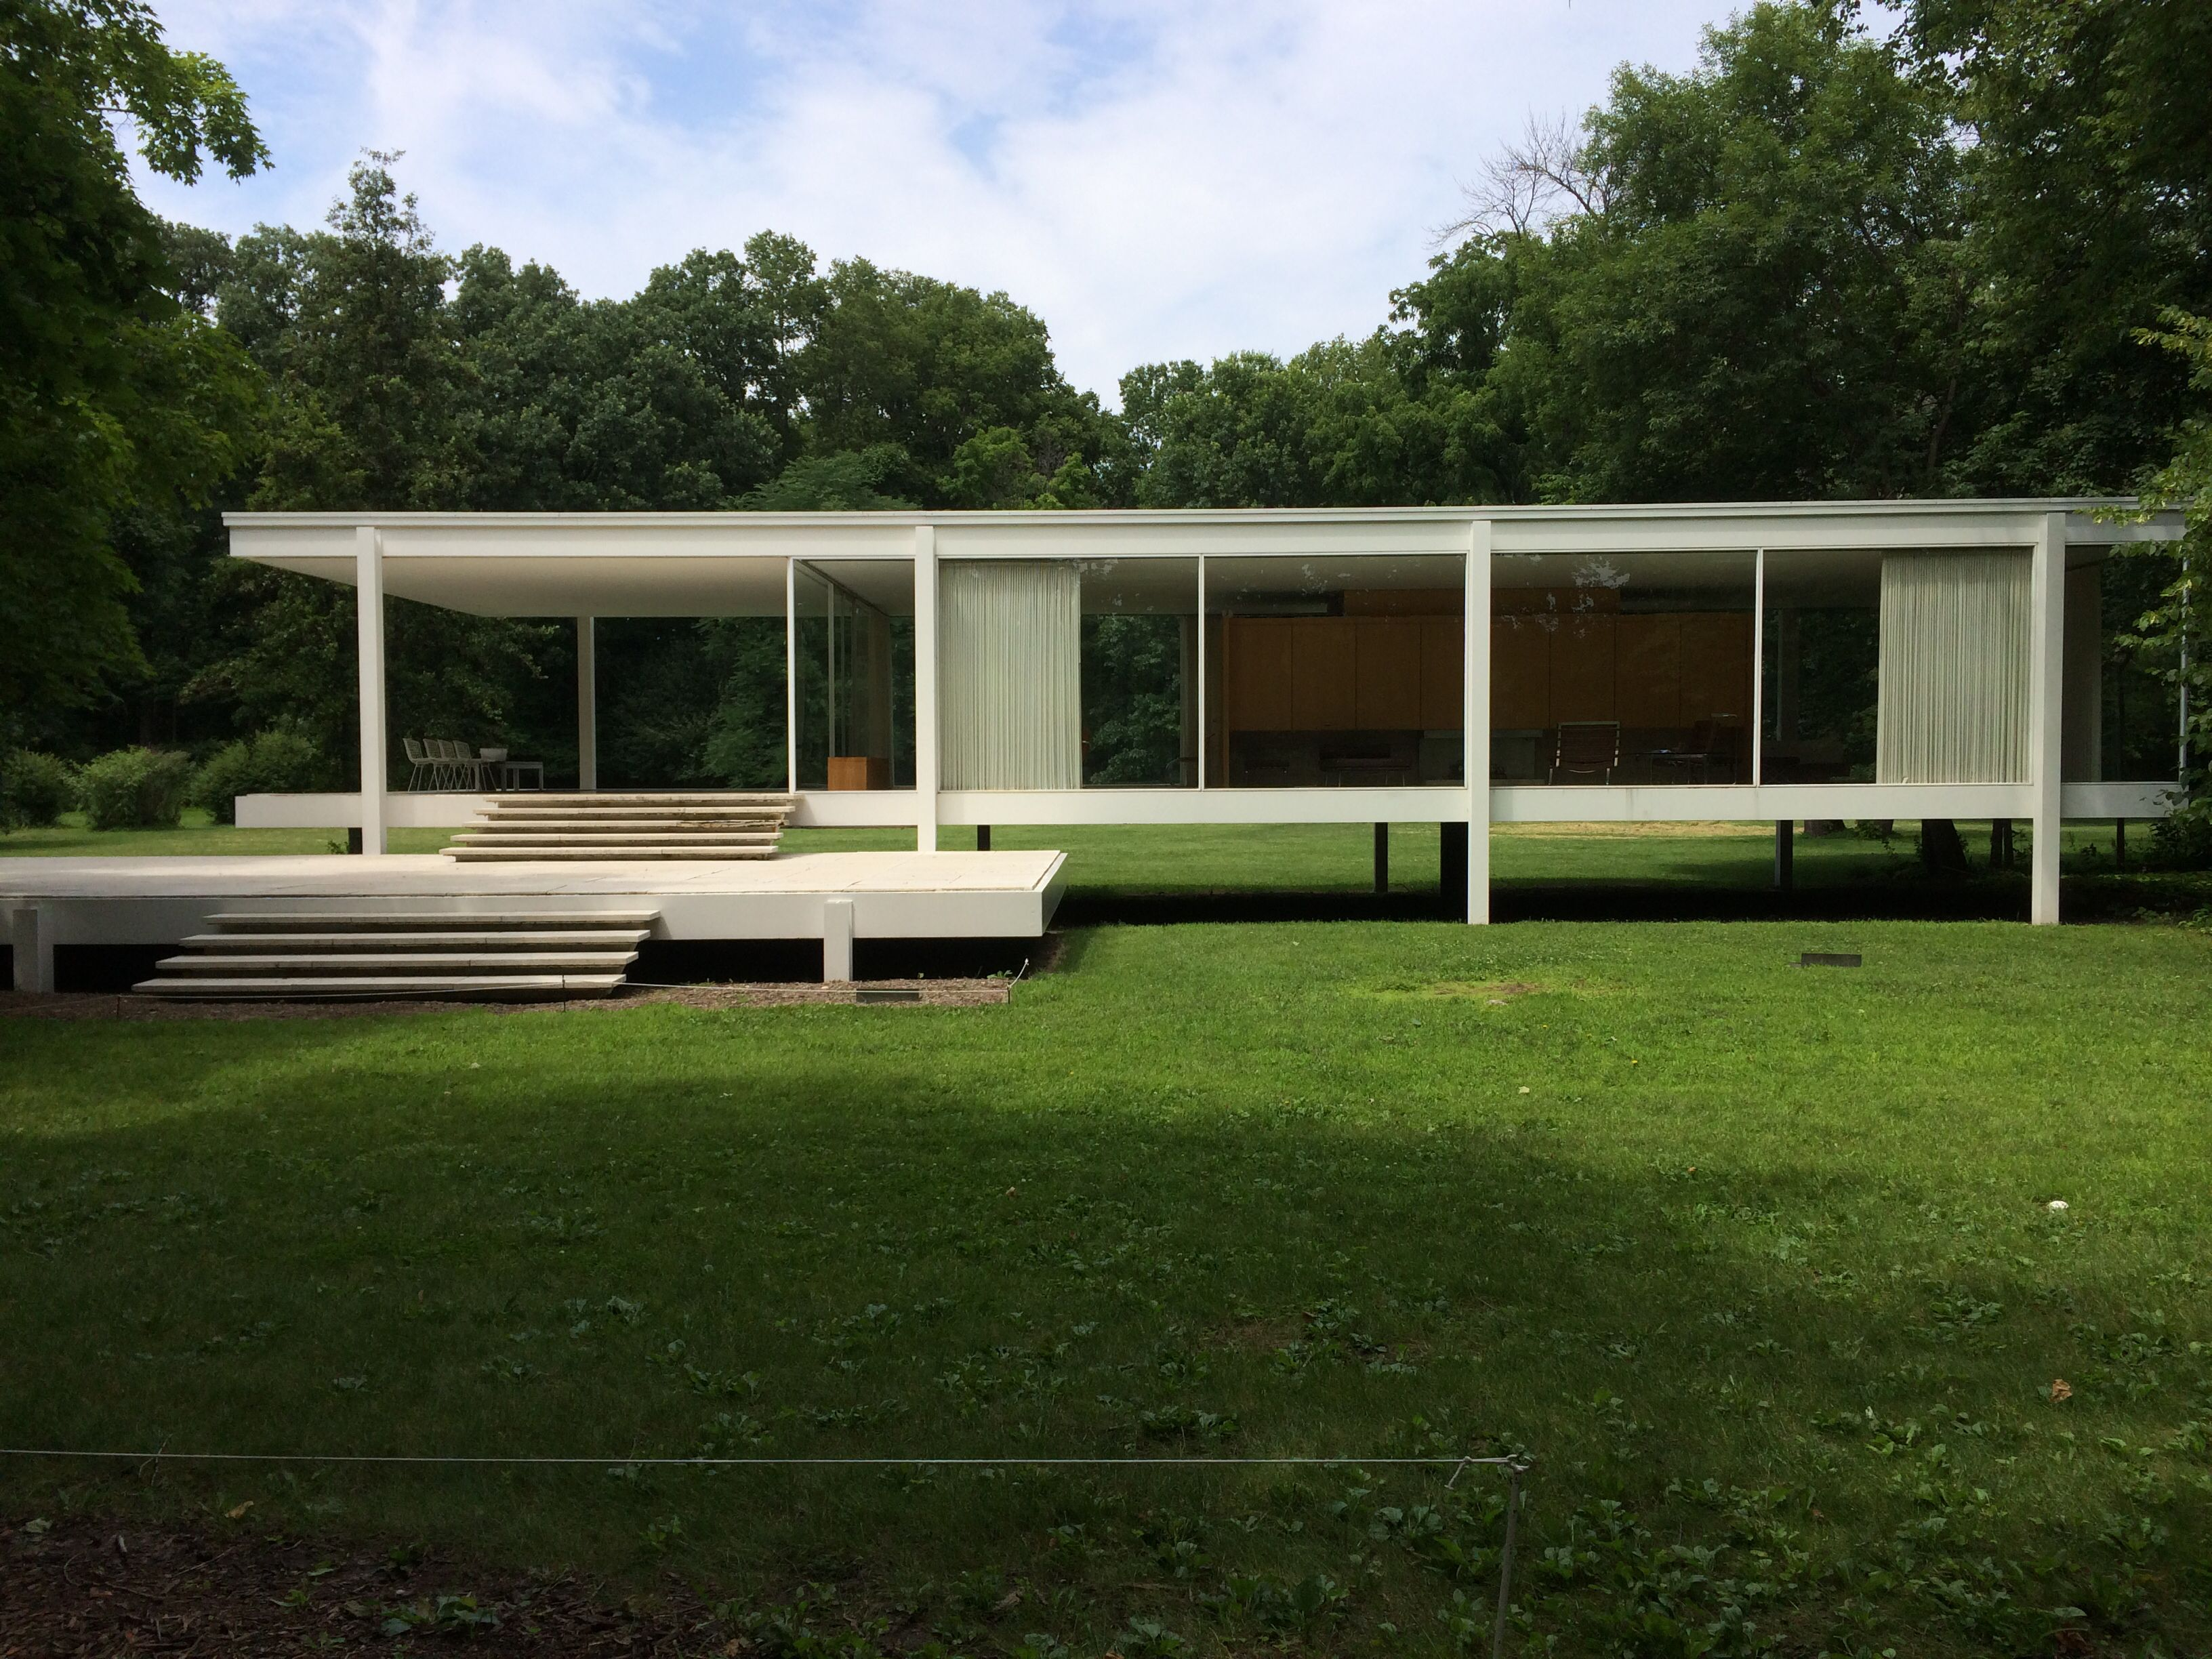 Designed by Mies van der Rohe in 1945 and constructed in 1951, the ...